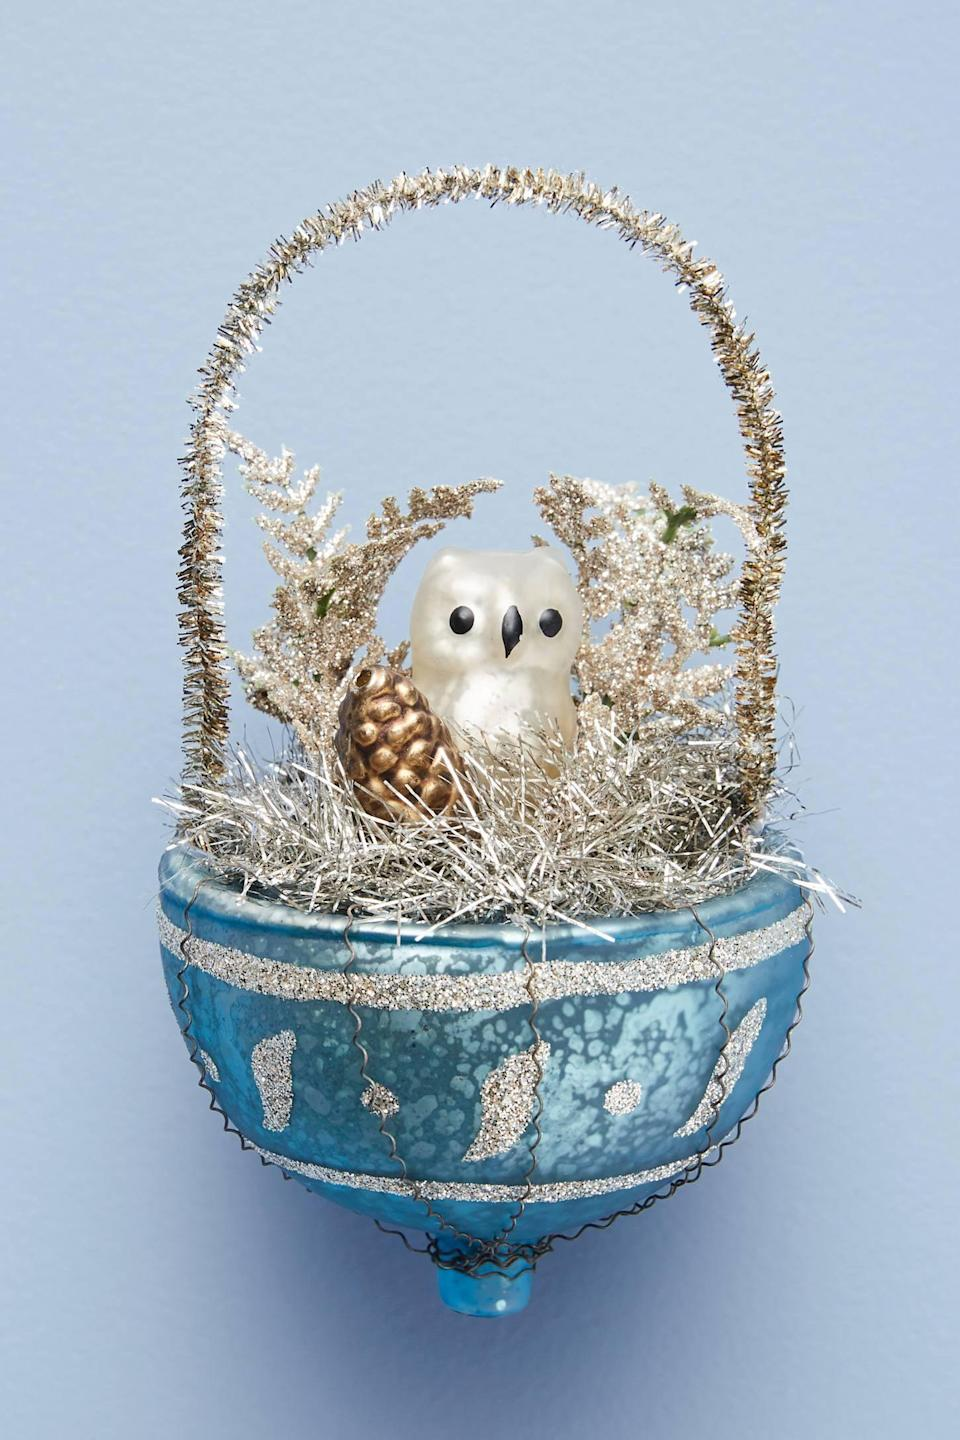 """<p>Give your tree a frosted woodland touch with this <a href=""""https://www.popsugar.com/buy/Owl-Nest-Ornament-490544?p_name=Owl%27s%20Nest%20Ornament&retailer=anthropologie.com&pid=490544&price=20&evar1=casa%3Aus&evar9=46615300&evar98=https%3A%2F%2Fwww.popsugar.com%2Fhome%2Fphoto-gallery%2F46615300%2Fimage%2F46615415%2FOwl-Nest-Ornament&list1=shopping%2Canthropologie%2Choliday%2Cchristmas%2Cchristmas%20decorations%2Choliday%20decor%2Chome%20shopping&prop13=mobile&pdata=1"""" rel=""""nofollow noopener"""" class=""""link rapid-noclick-resp"""" target=""""_blank"""" data-ylk=""""slk:Owl's Nest Ornament"""">Owl's Nest Ornament</a> ($20).</p>"""